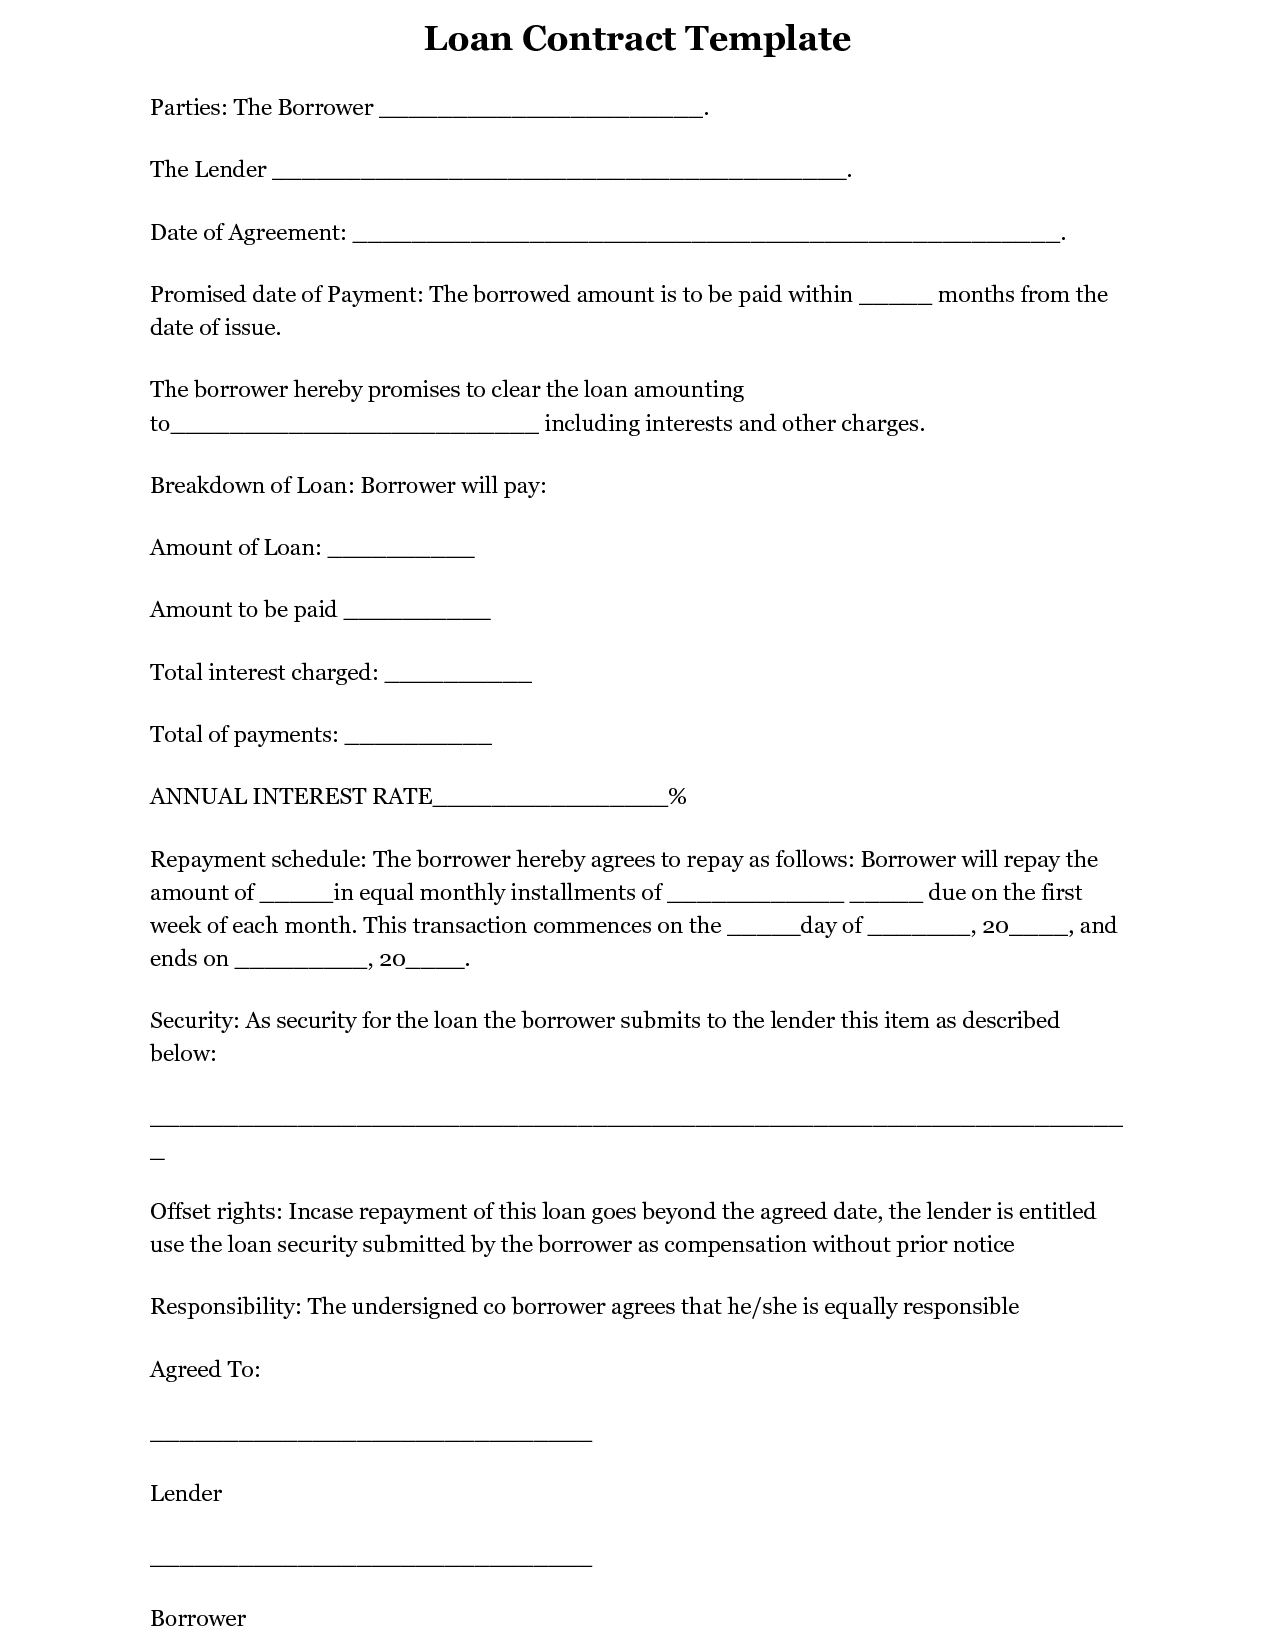 Simple Interest Loan Agreement Template | Koco Yhinoha   Simple Loan  Contract  Personal Loan Contract Sample